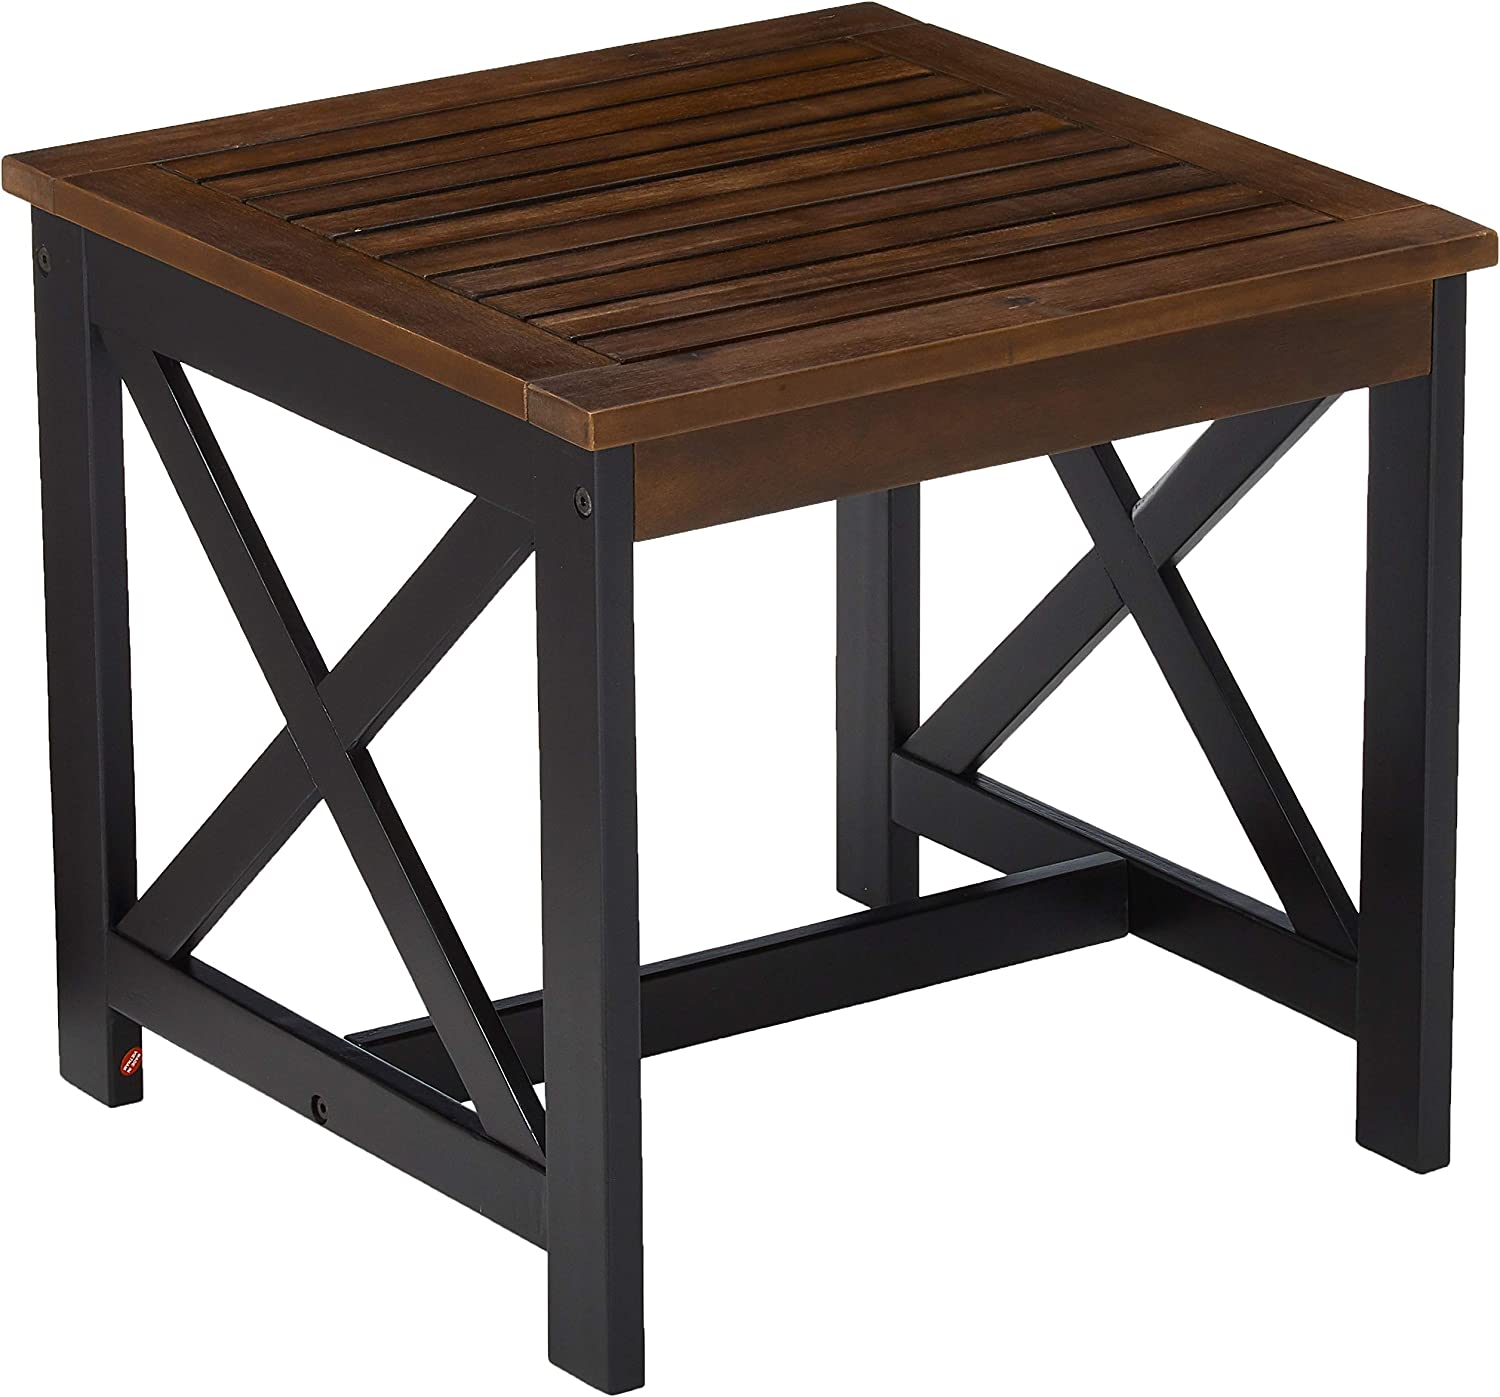 Christopher Knight Home Jean Indoor Farmhouse Acacia Wood End Table, Dark Brown Finish, Black Finish